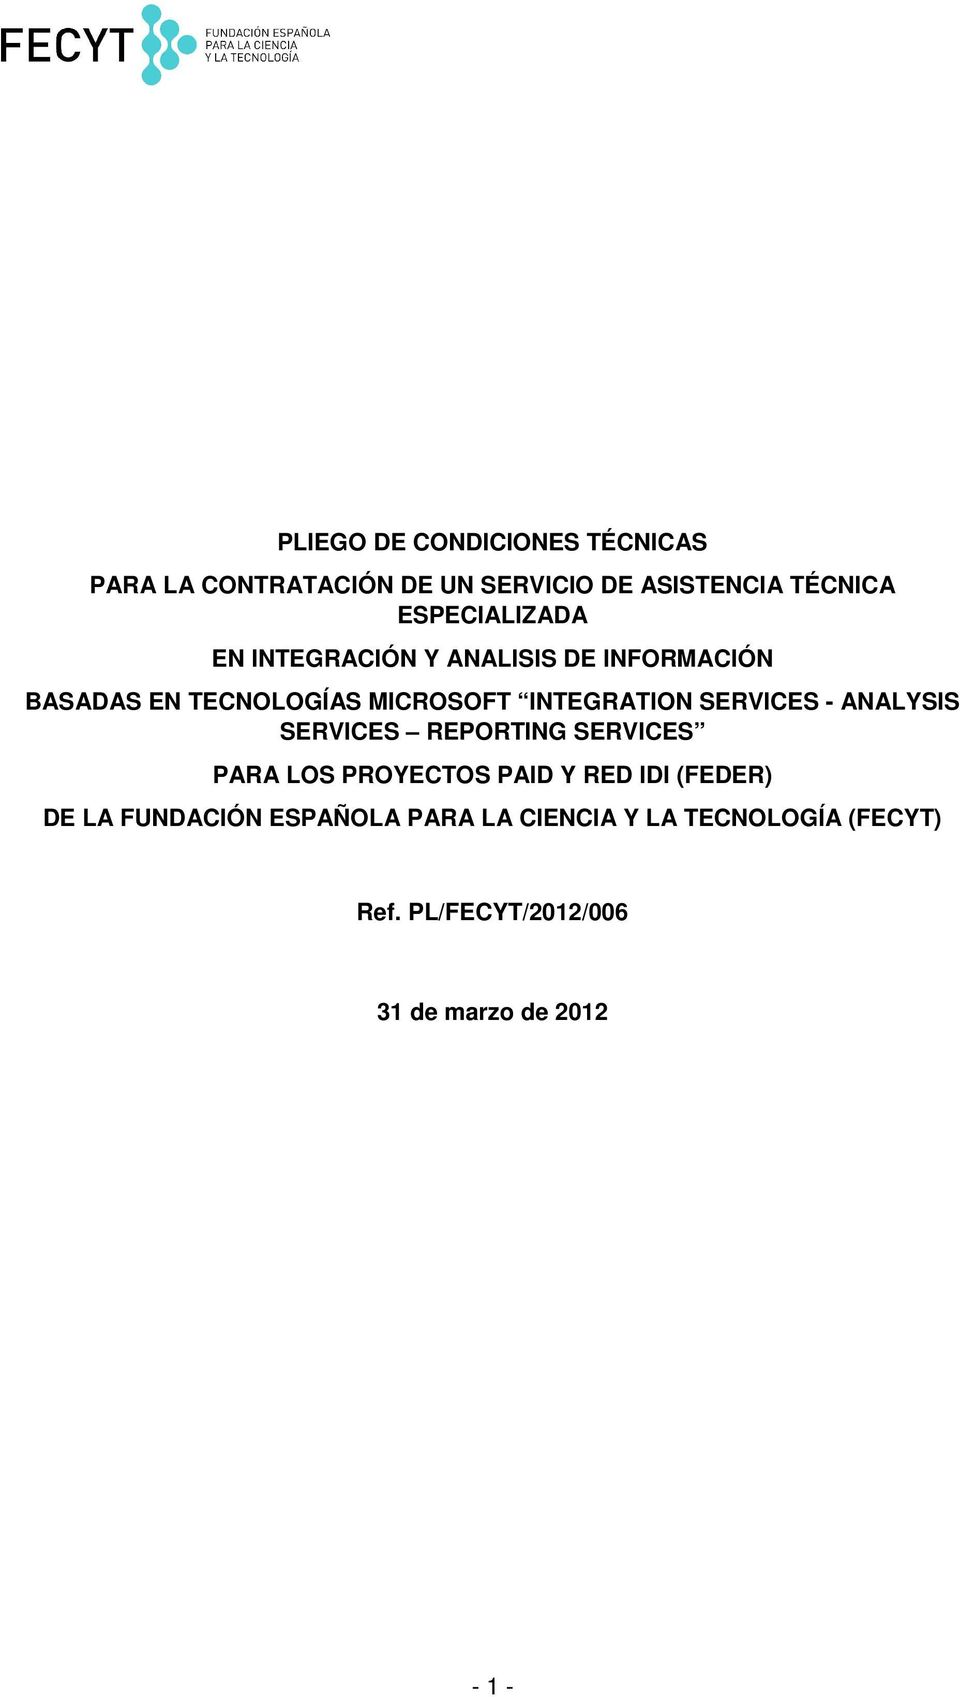 INTEGRATION SERVICES - ANALYSIS SERVICES REPORTING SERVICES PARA LOS PROYECTOS PAID Y RED IDI